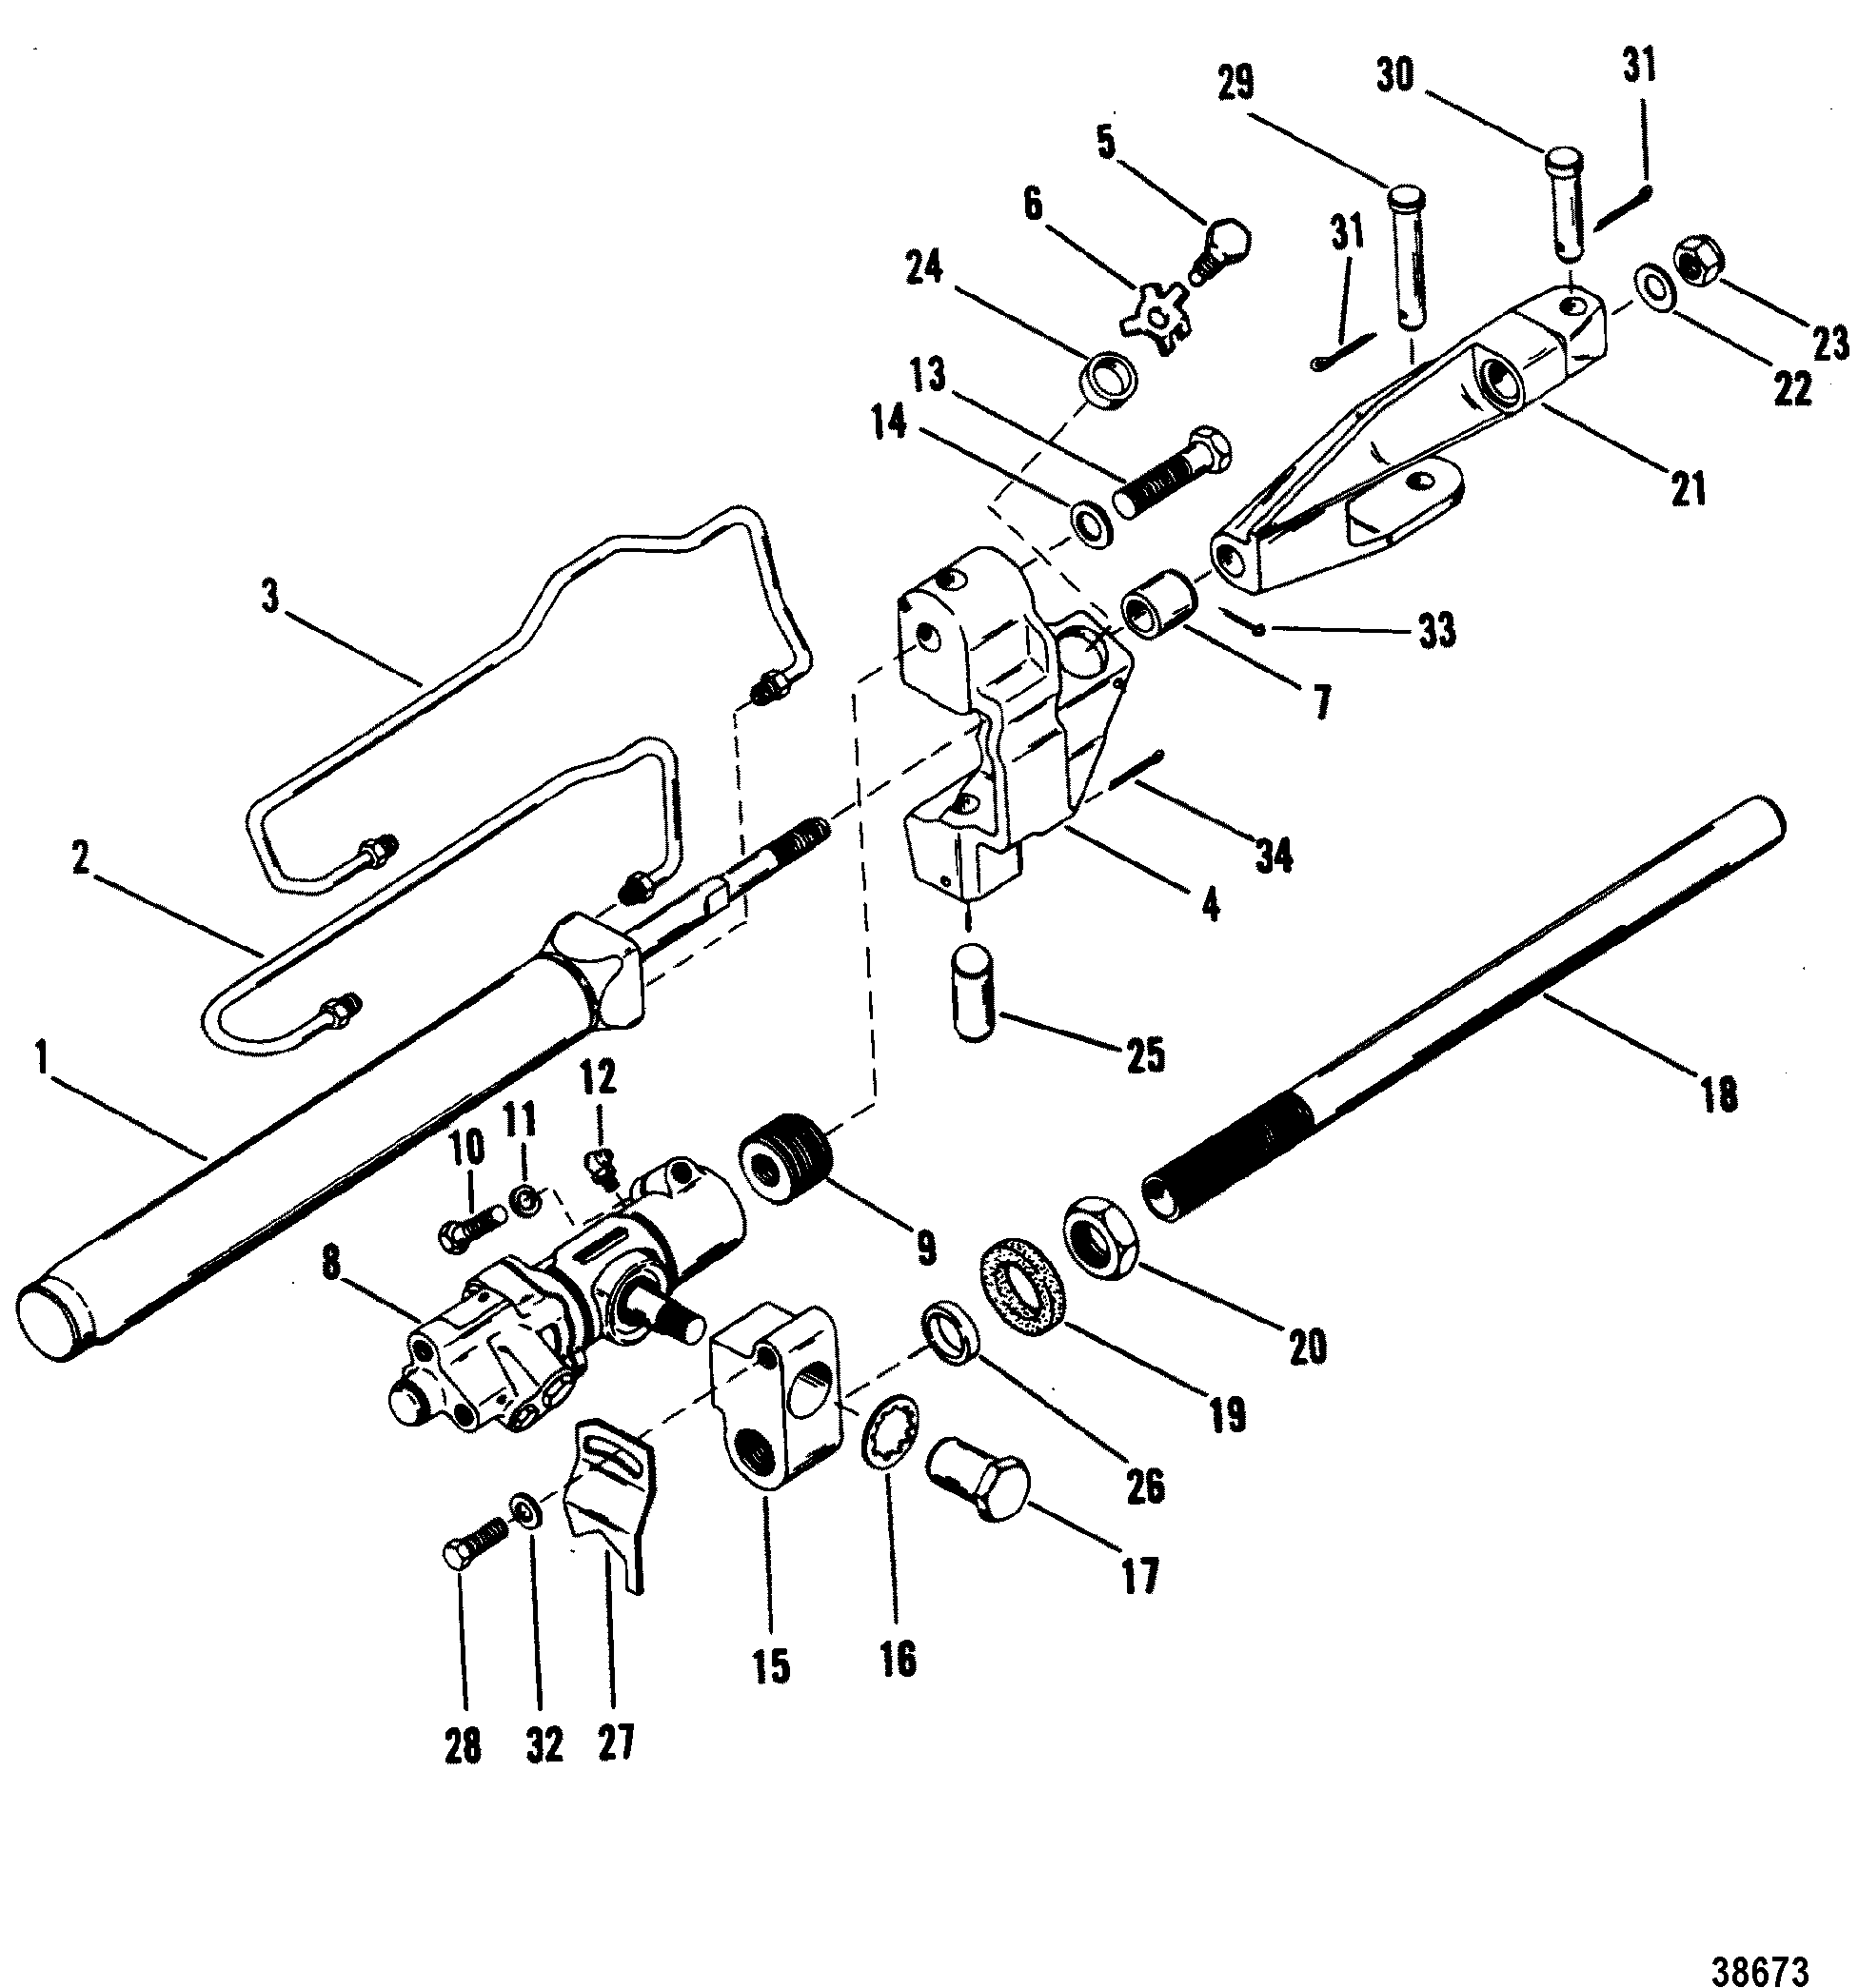 seastar hydraulic steering parts diagram ford 4000 wiring pictures power components old design for mercruiser bravo